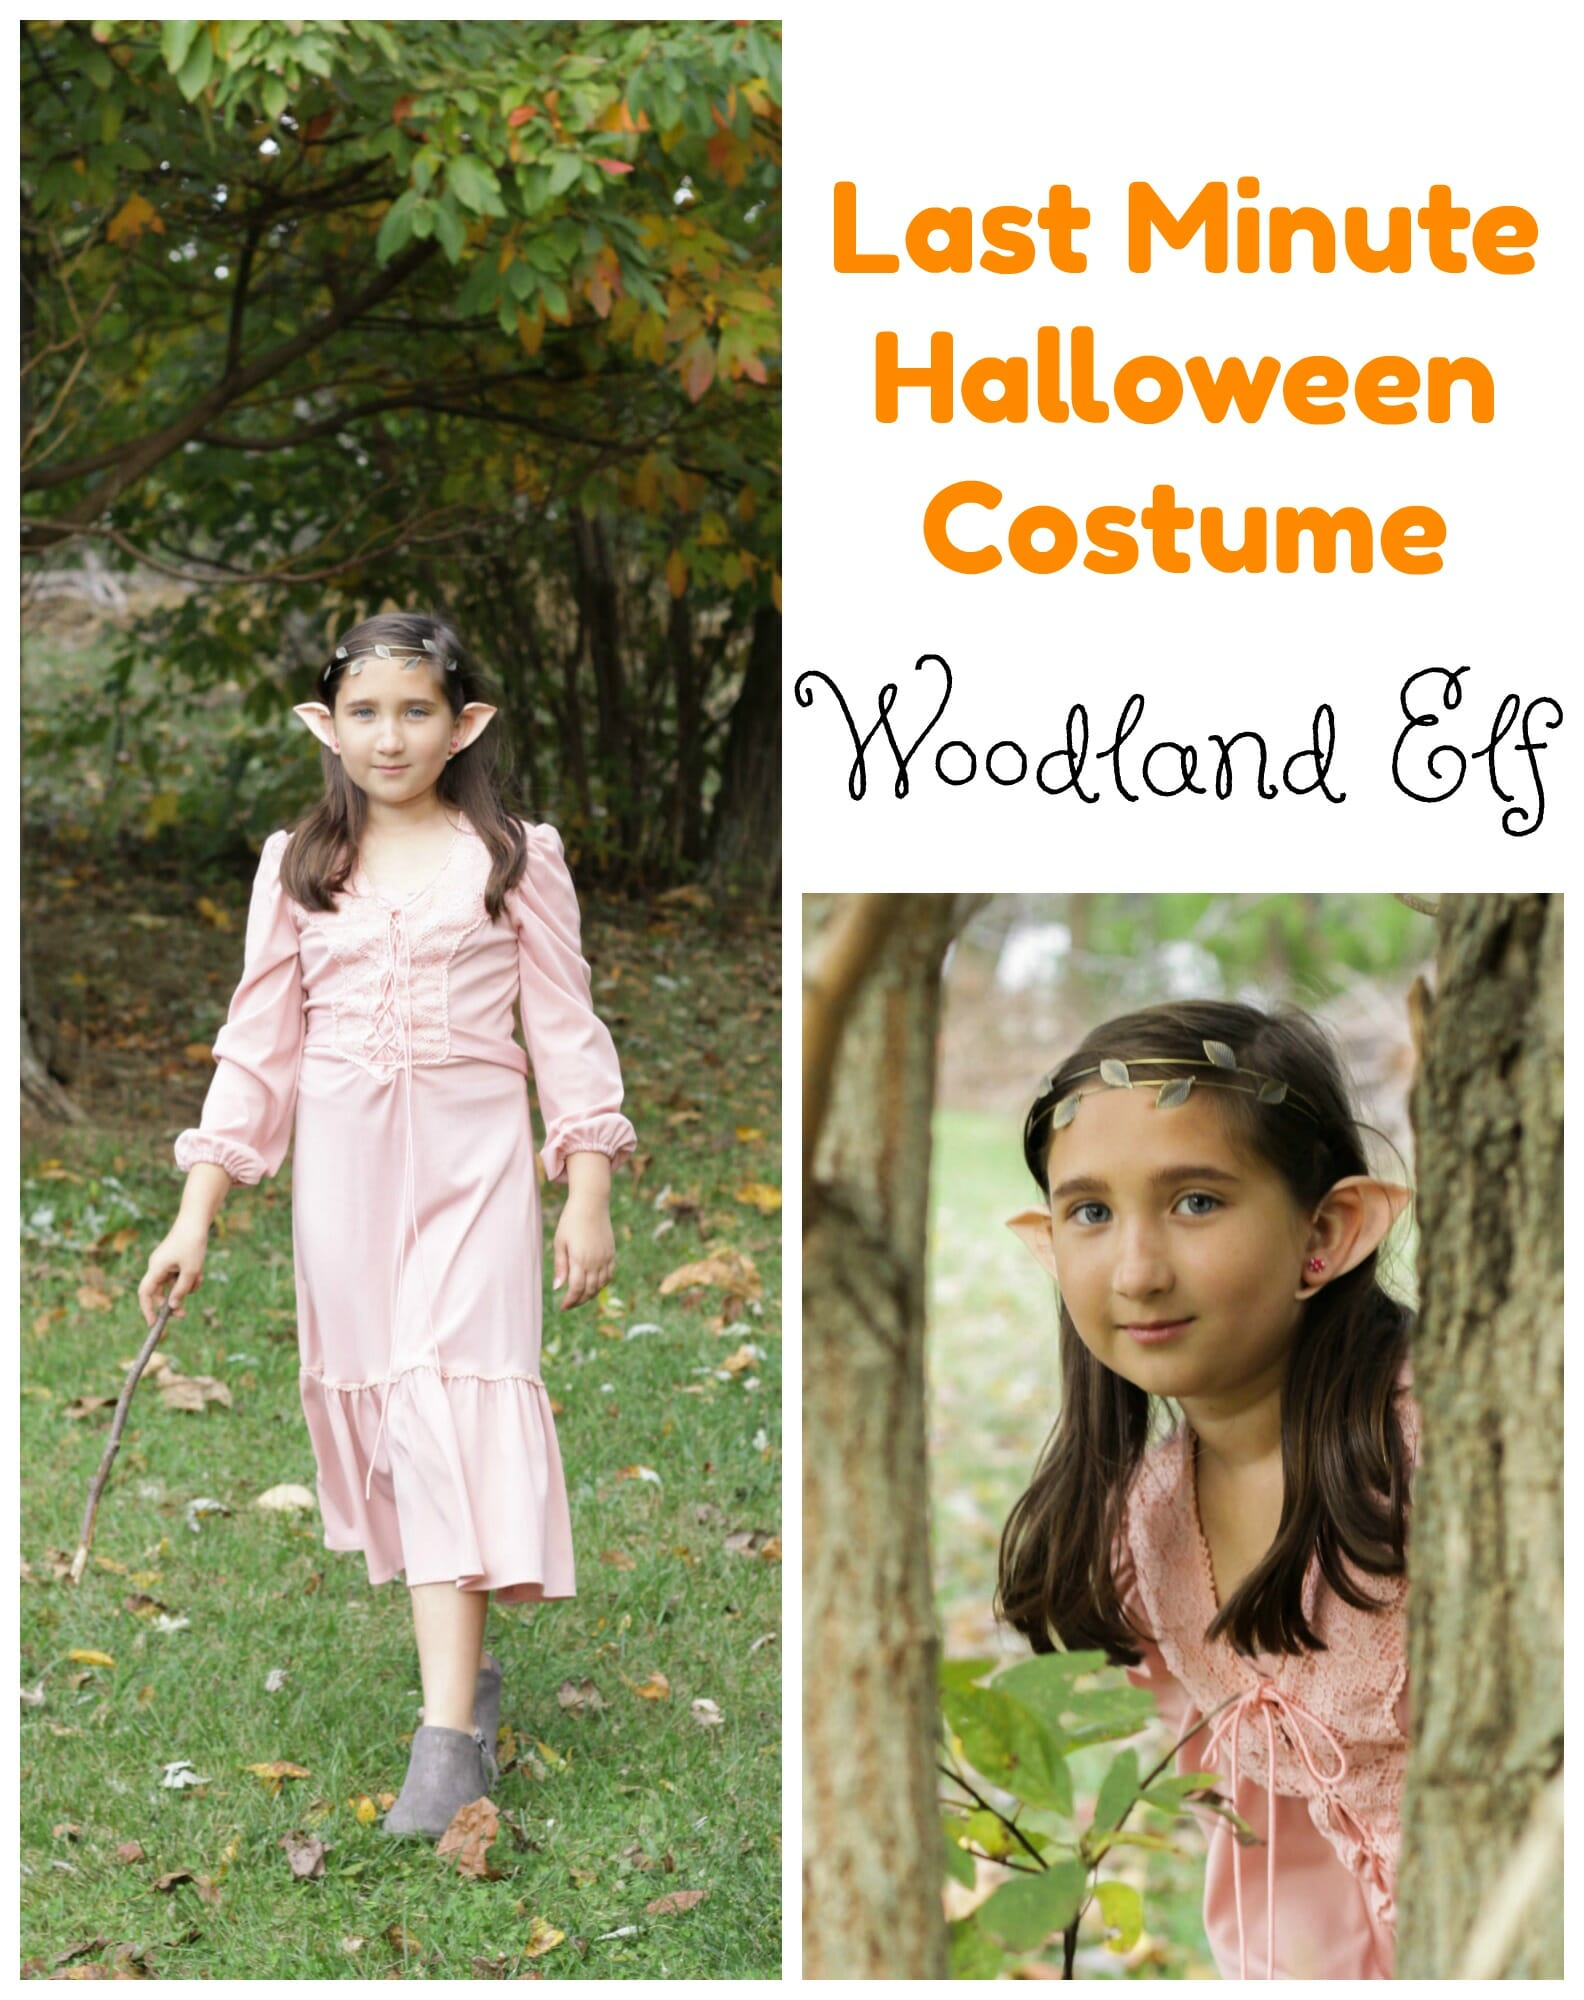 ... minute easy elf costume. You could truly use any longer romantic style dress but let me show you how this all came to be.  sc 1 st  Cassie Bustamante & Last Minute Easy Elf Halloween Costume for Girls or Women - Cassie ...